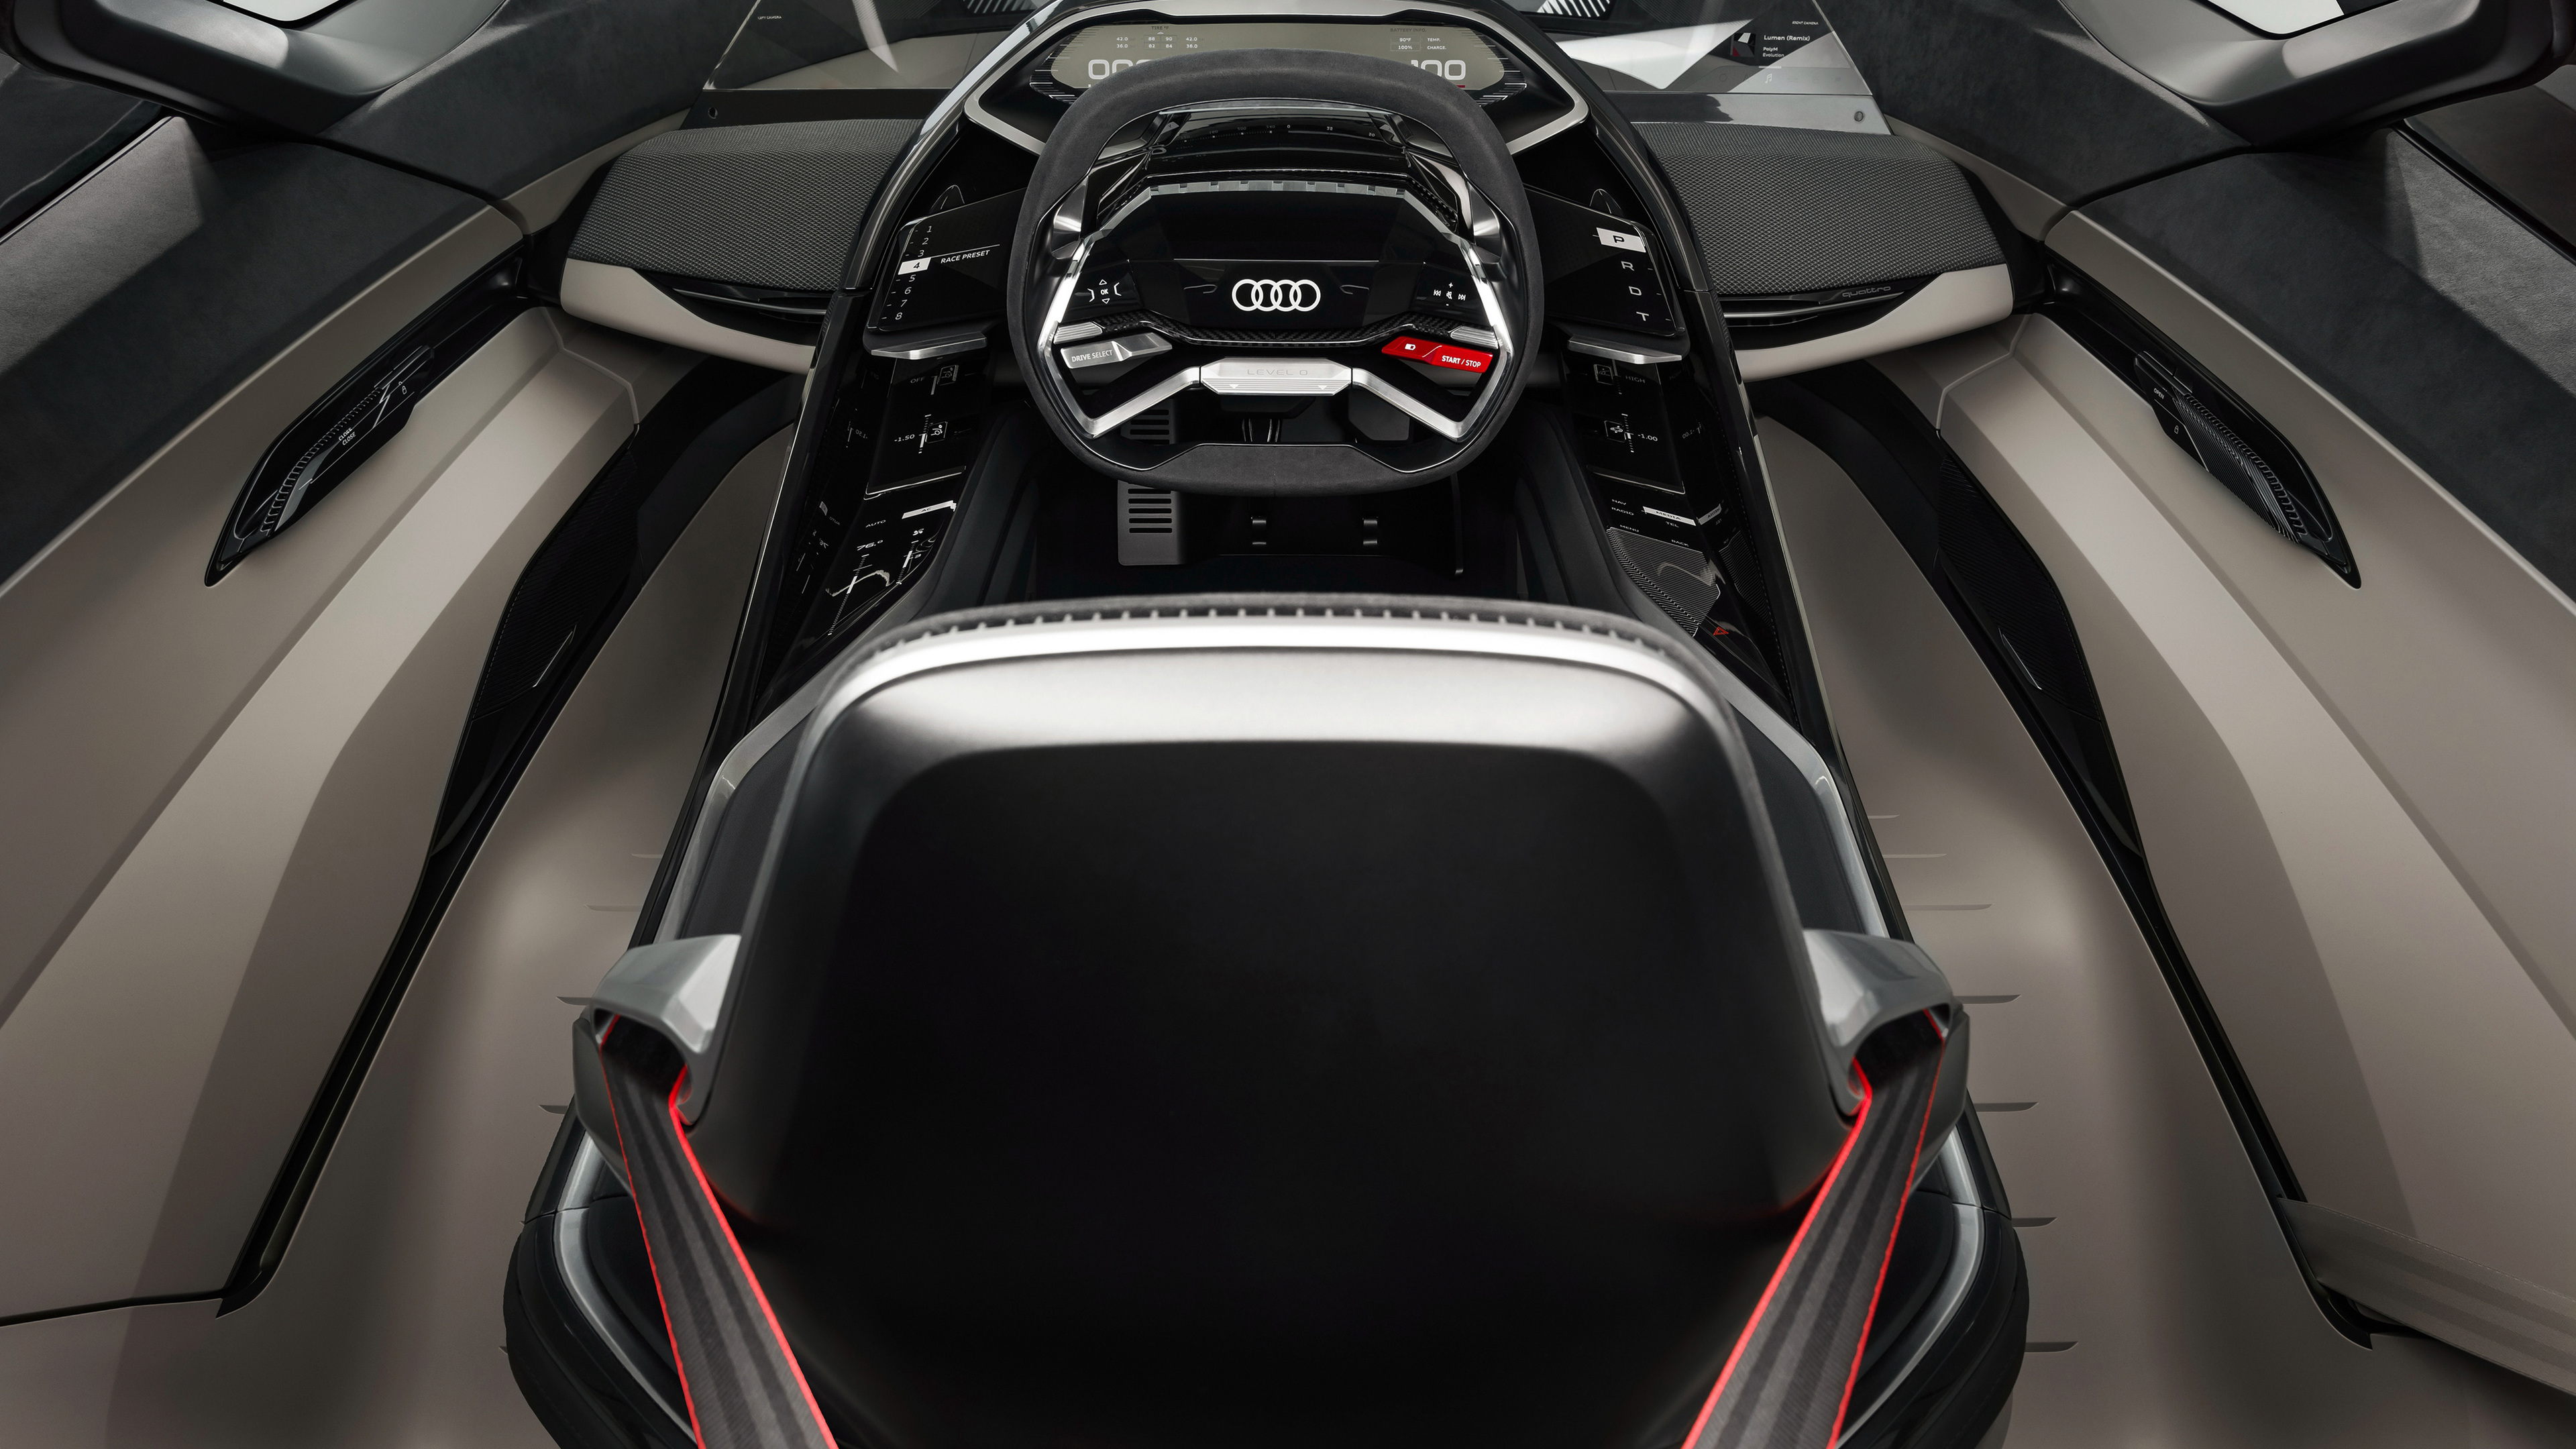 audi pb 18 e tron 2018 interior 1539113941 - Audi PB 18 E Tron 2018 Interior - hd-wallpapers, concept cars wallpapers, audi wallpapers, audi e tron wallpapers, 4k-wallpapers, 2018 cars wallpapers